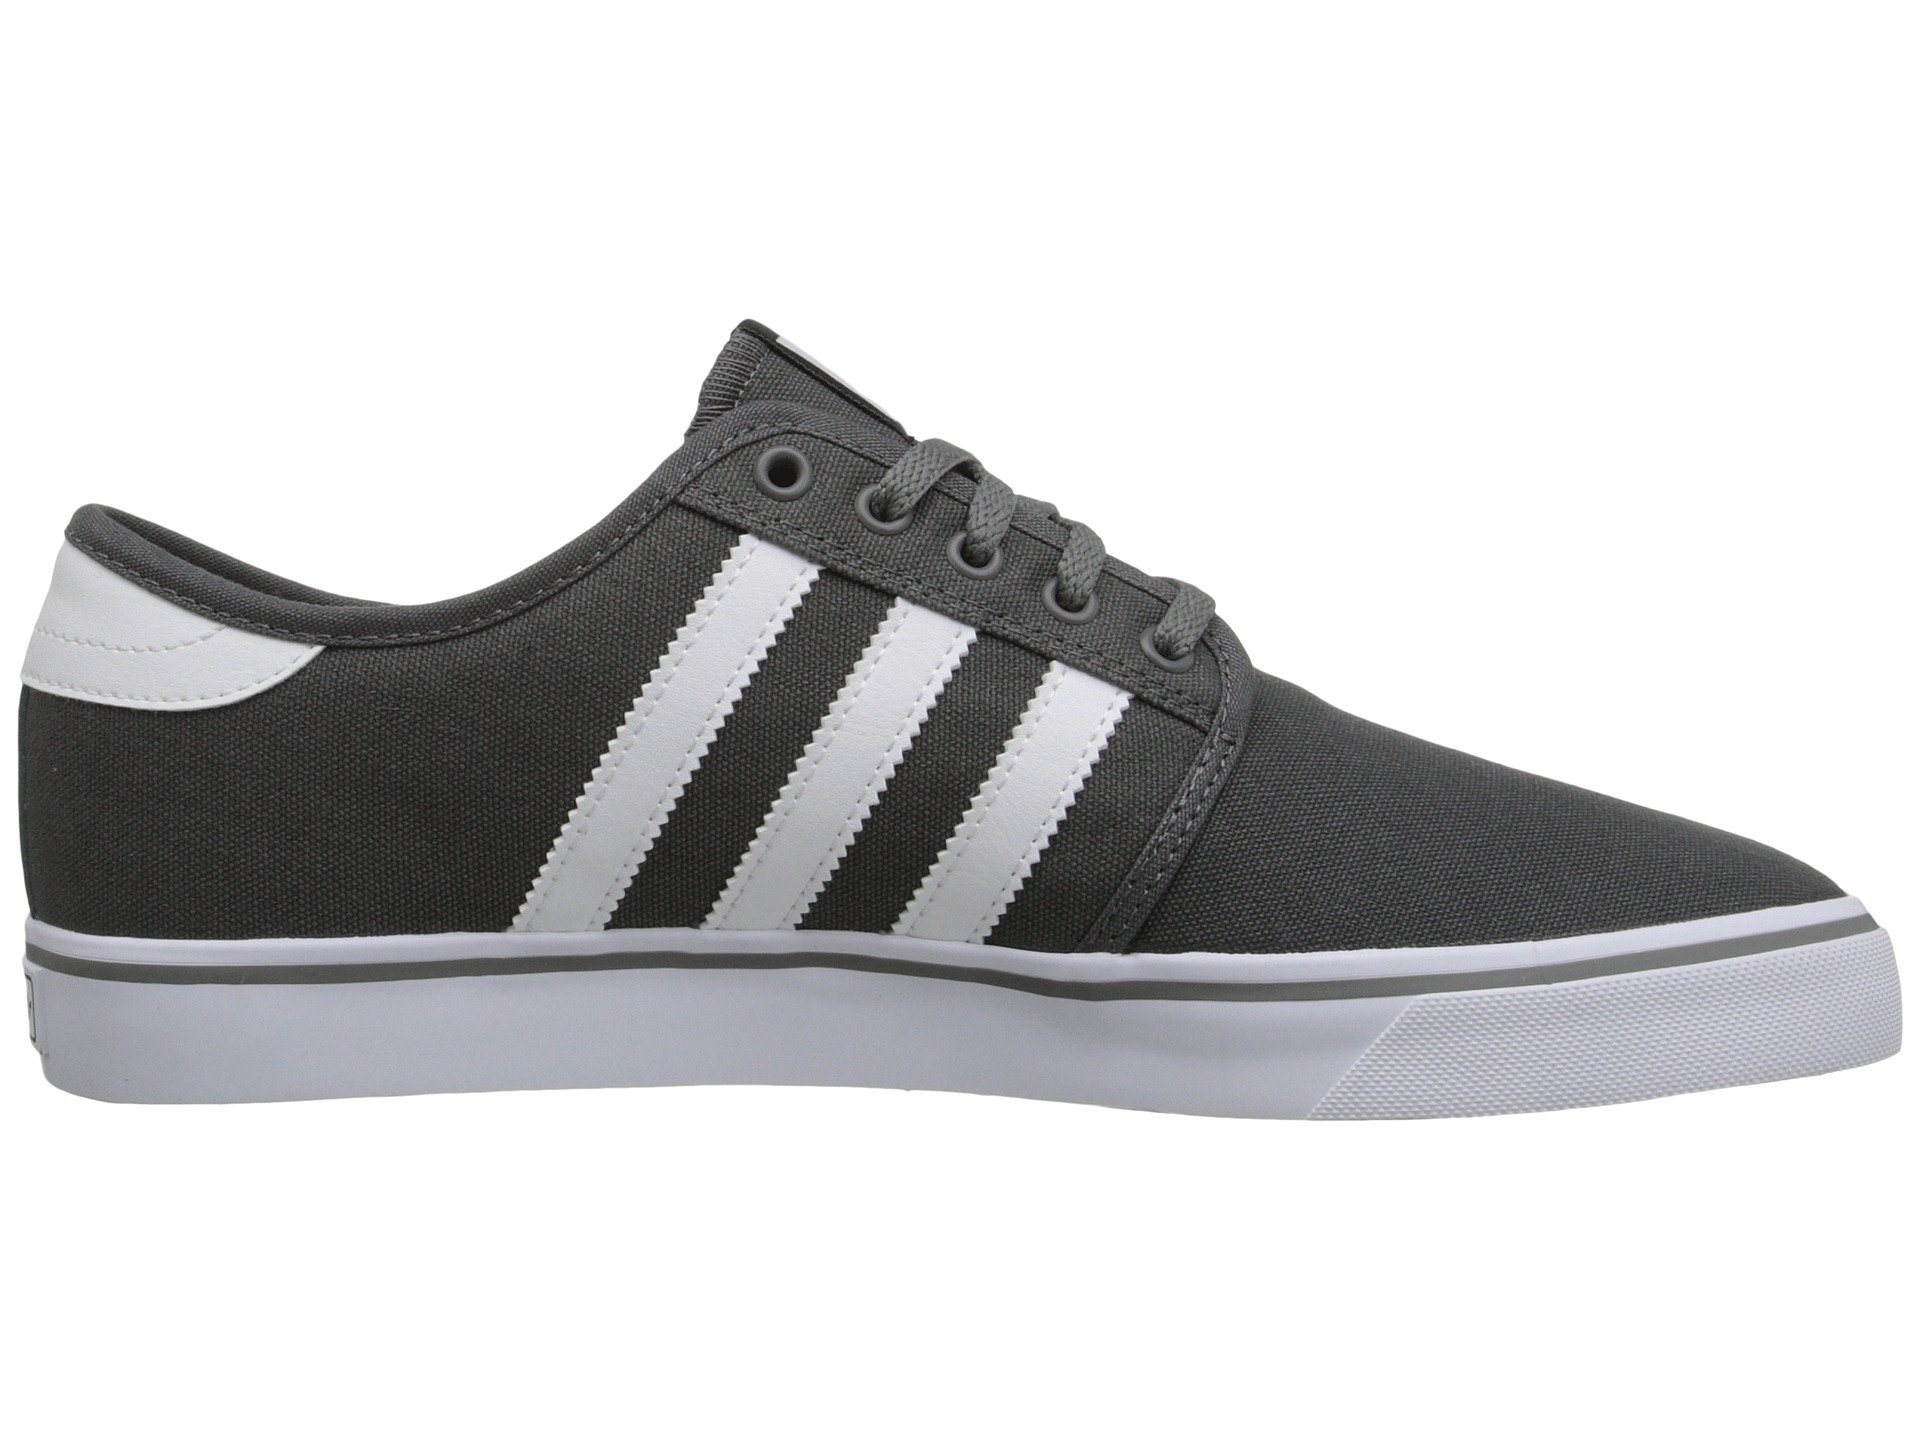 Adidas Originals Skate Seeley Shoes Men Black Green Special Offers Durable  Casual a893808f8